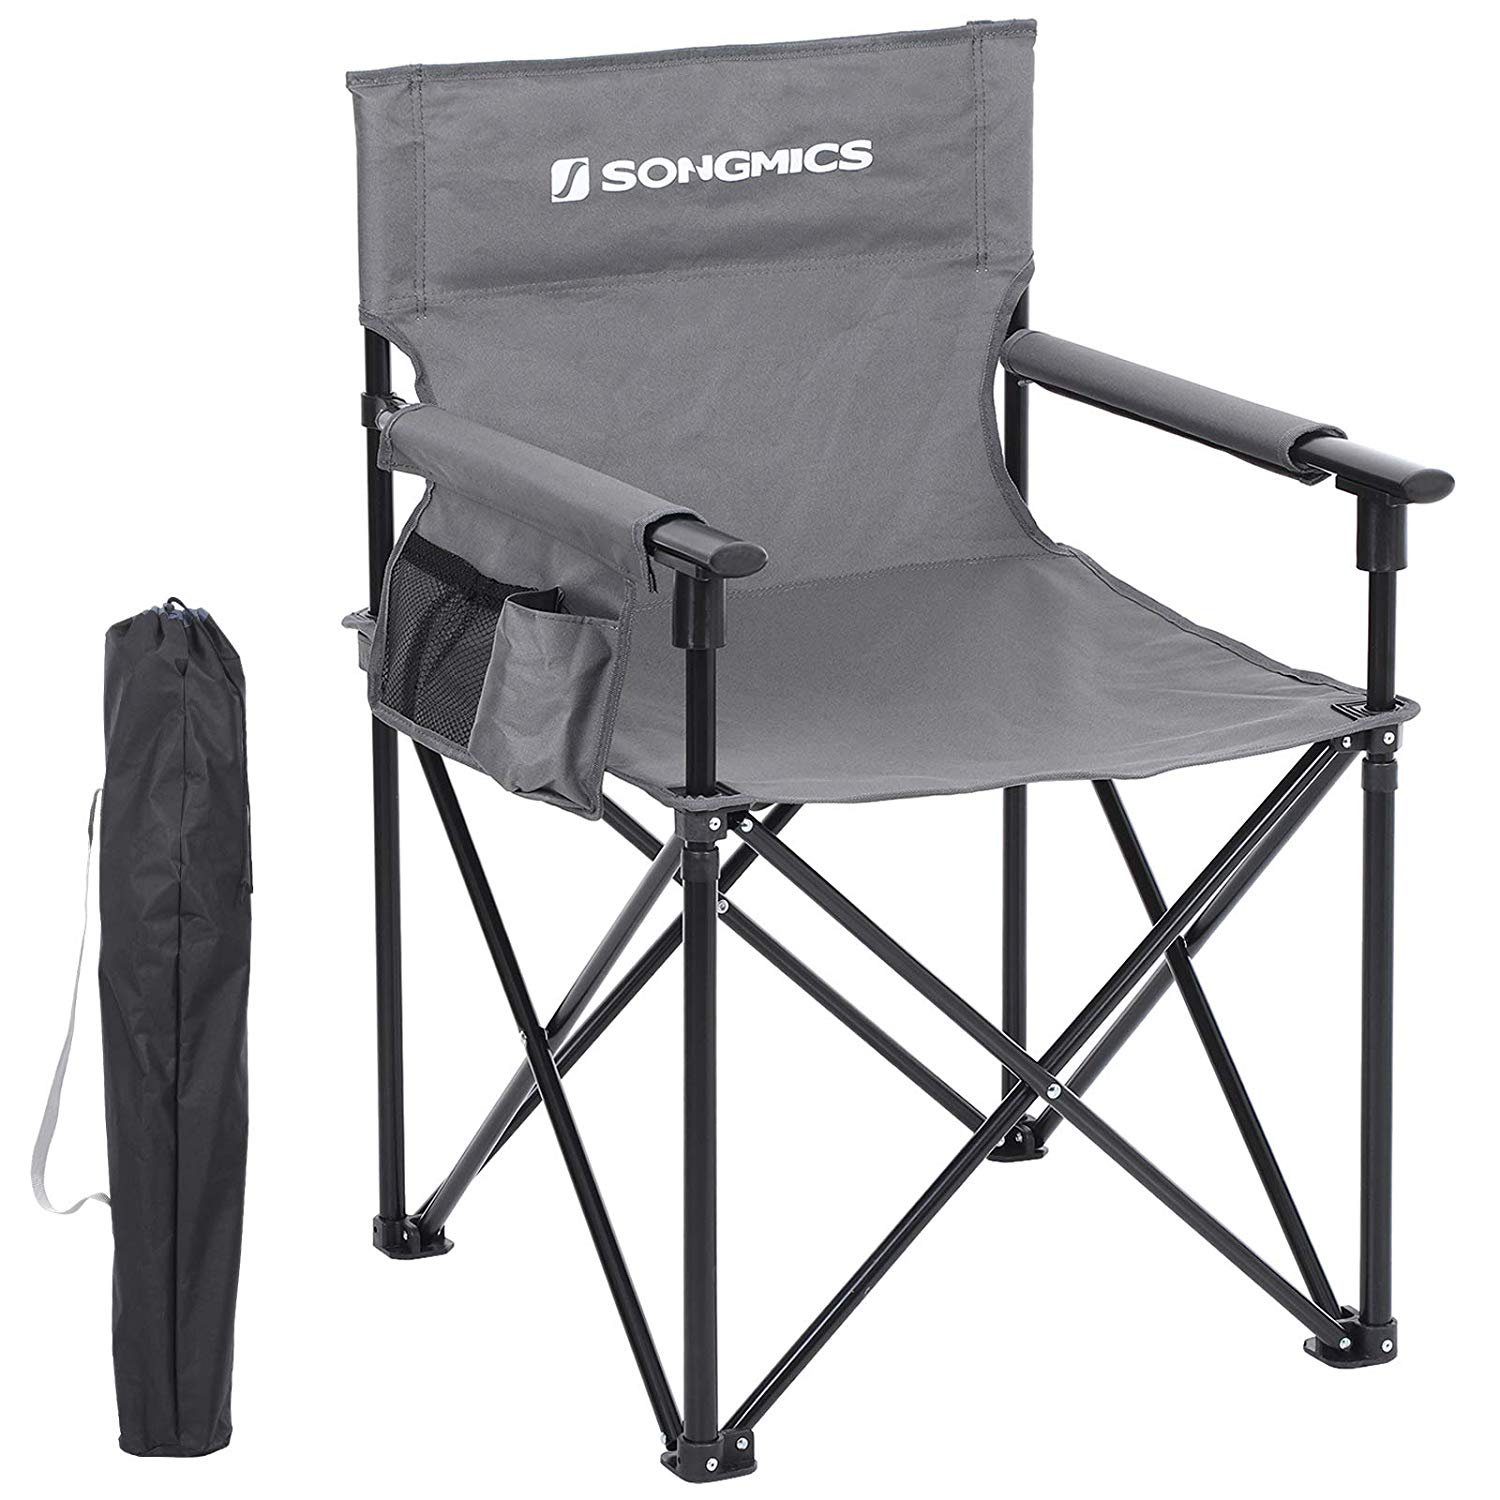 SONGMICS Camping Chair, Foldable Outdoor Chair